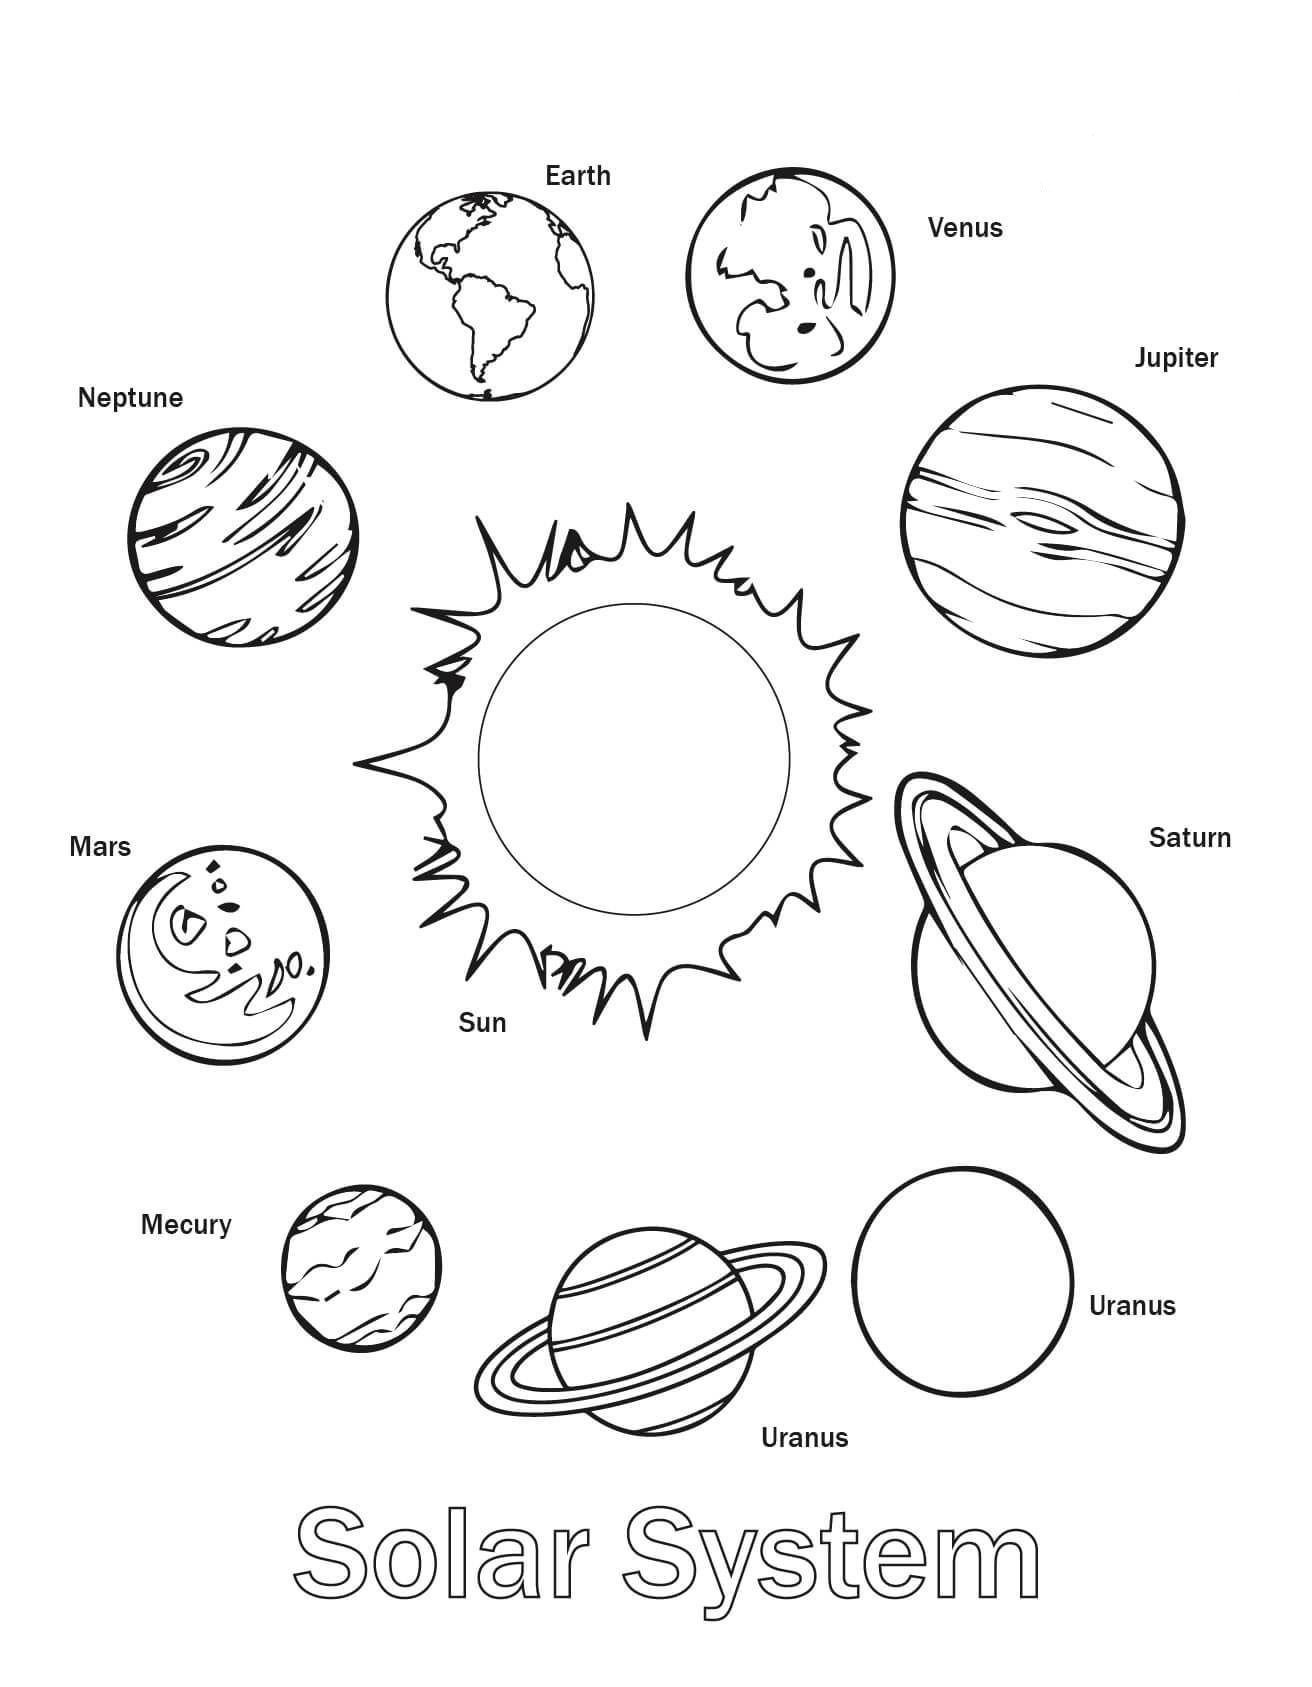 Solar System Worksheets 5th Grade Free Printable solar System Coloring for Kids Planets